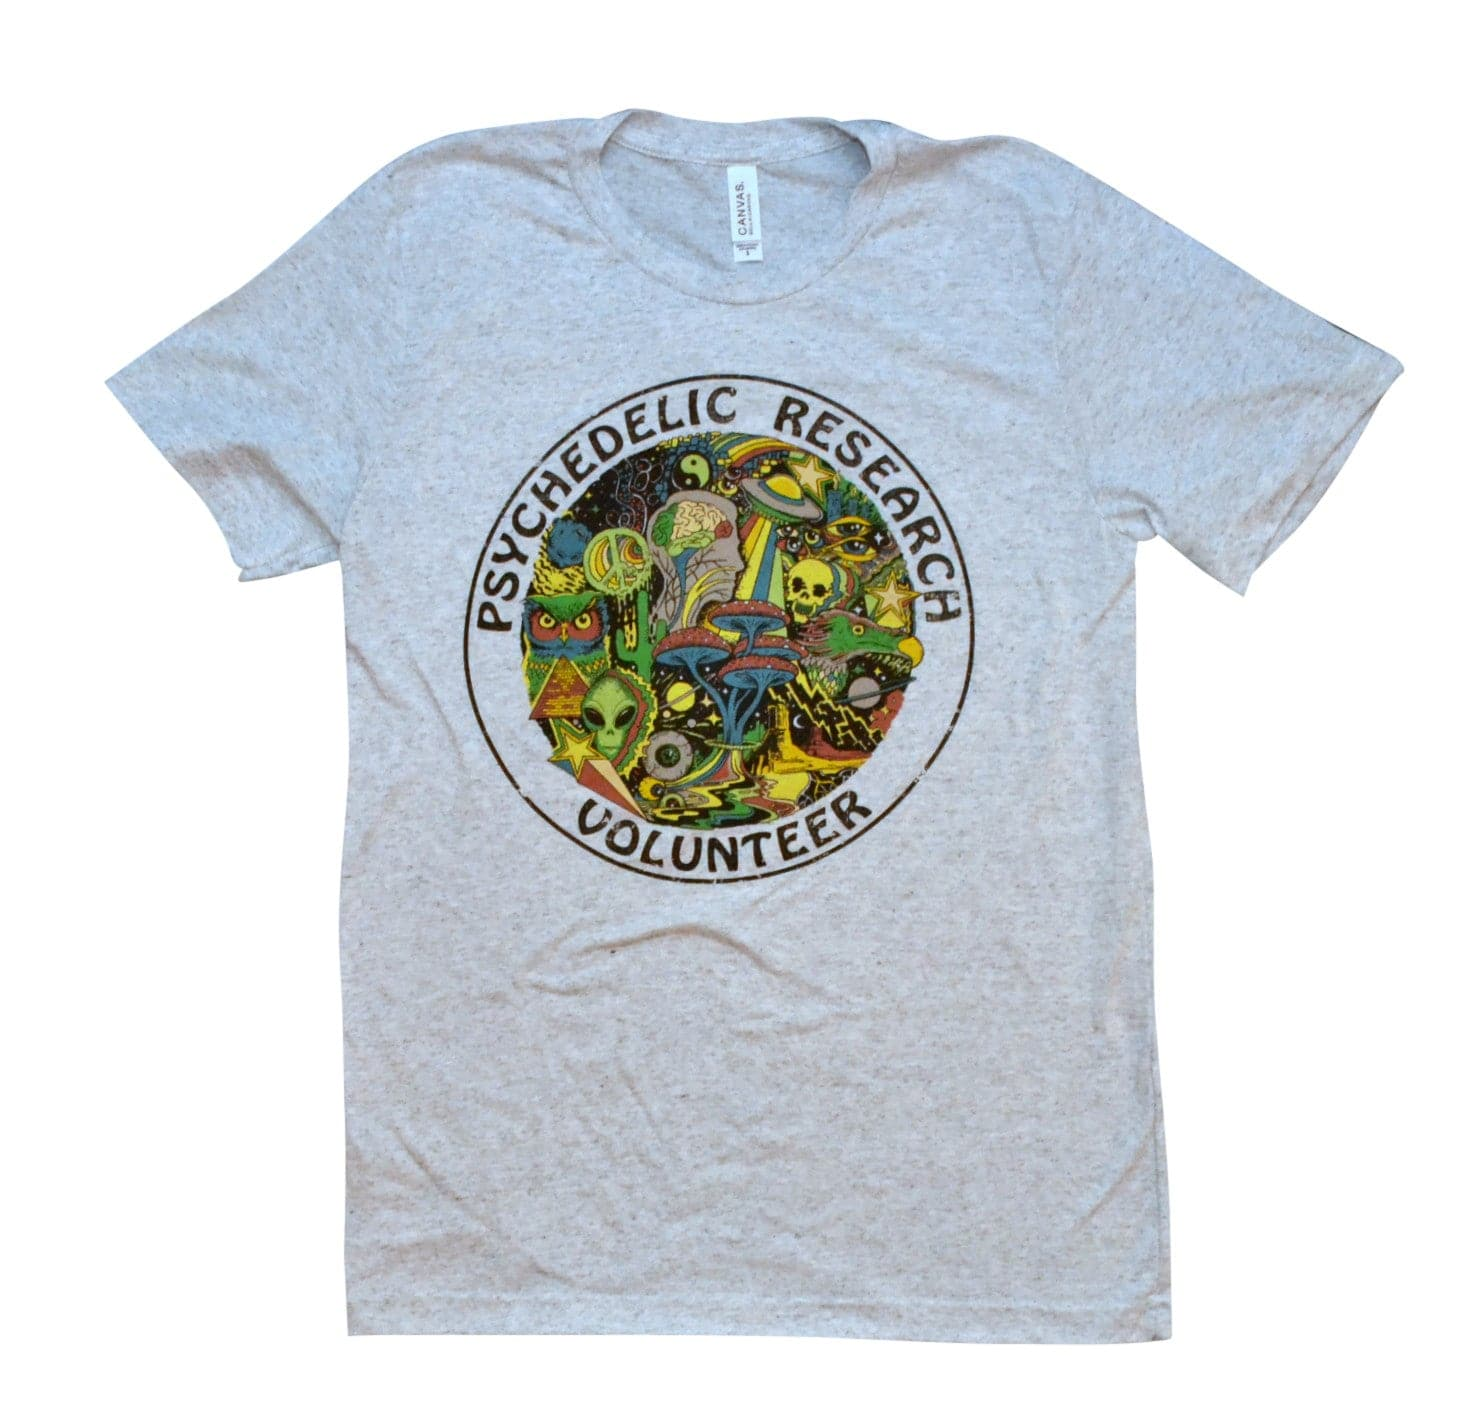 'Psychedelic Research Volunteer' Shirt